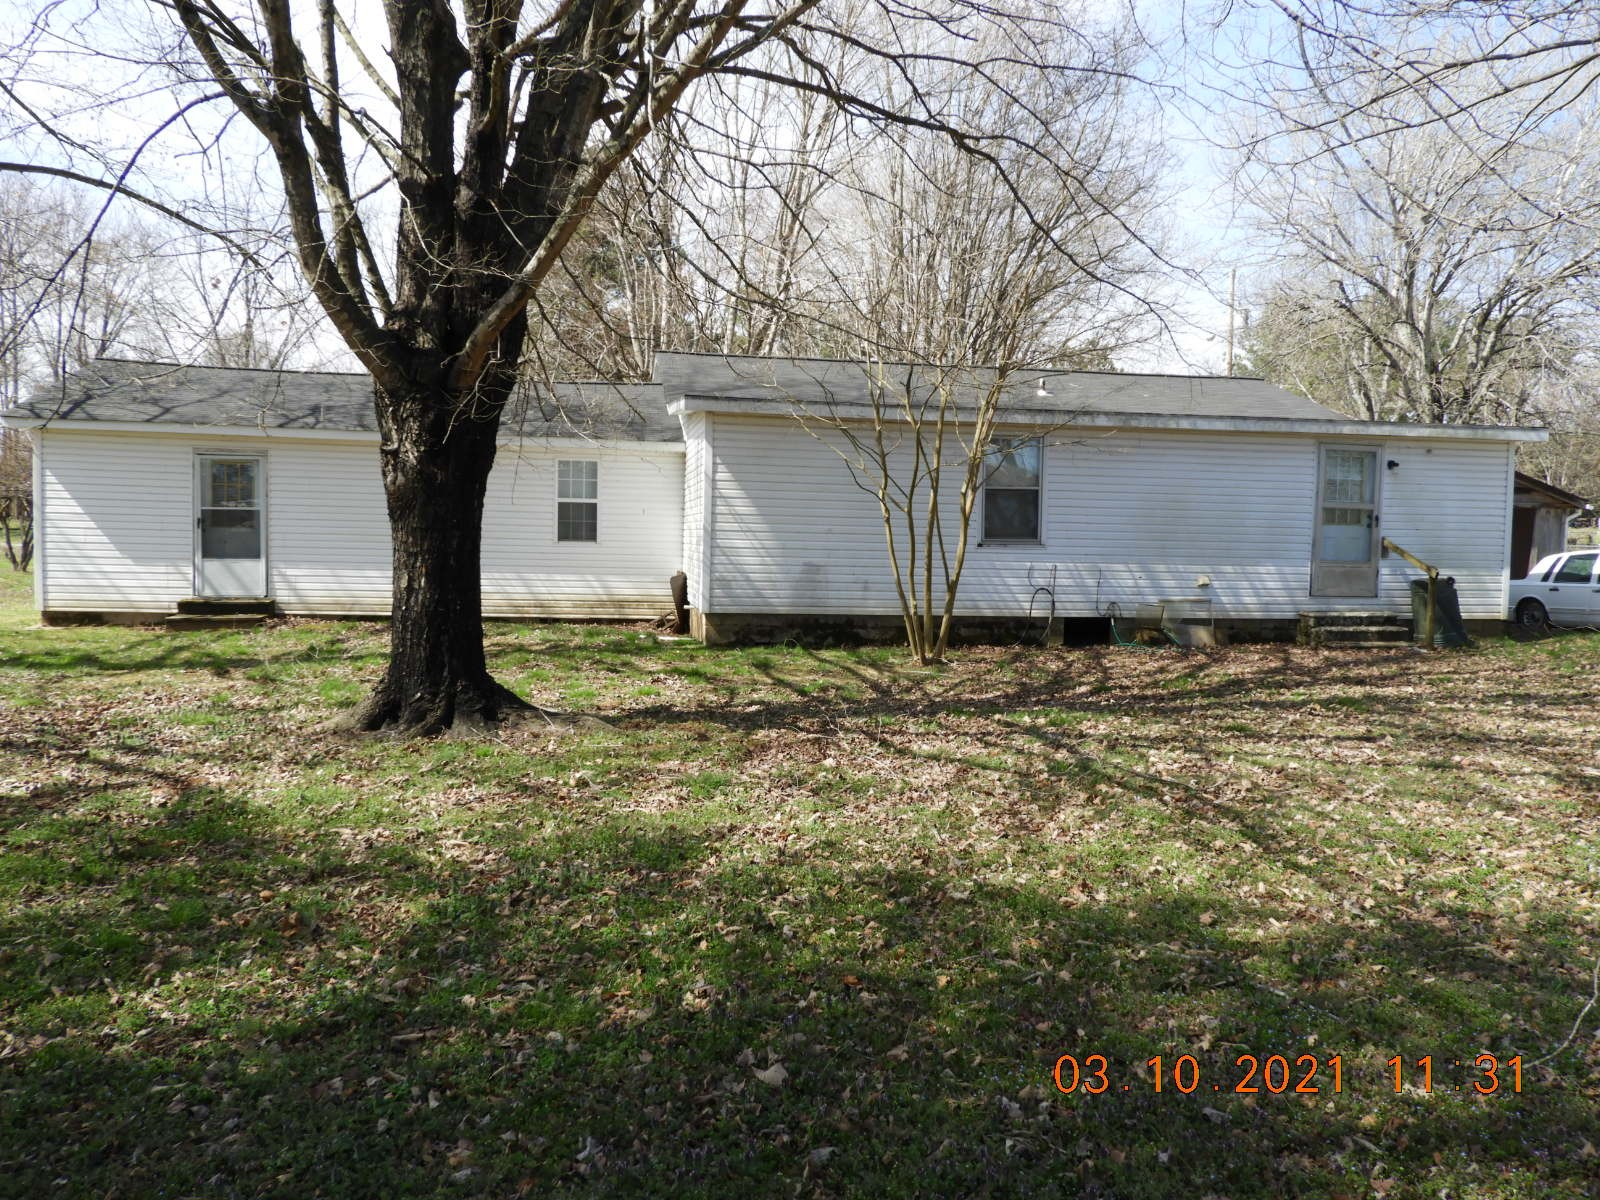 142 Sunset Dr, Prospect, Tennessee 38477, 3 Bedrooms Bedrooms, ,2 BathroomsBathrooms,Single Family,For Sale,142 Sunset Dr,1,2234946